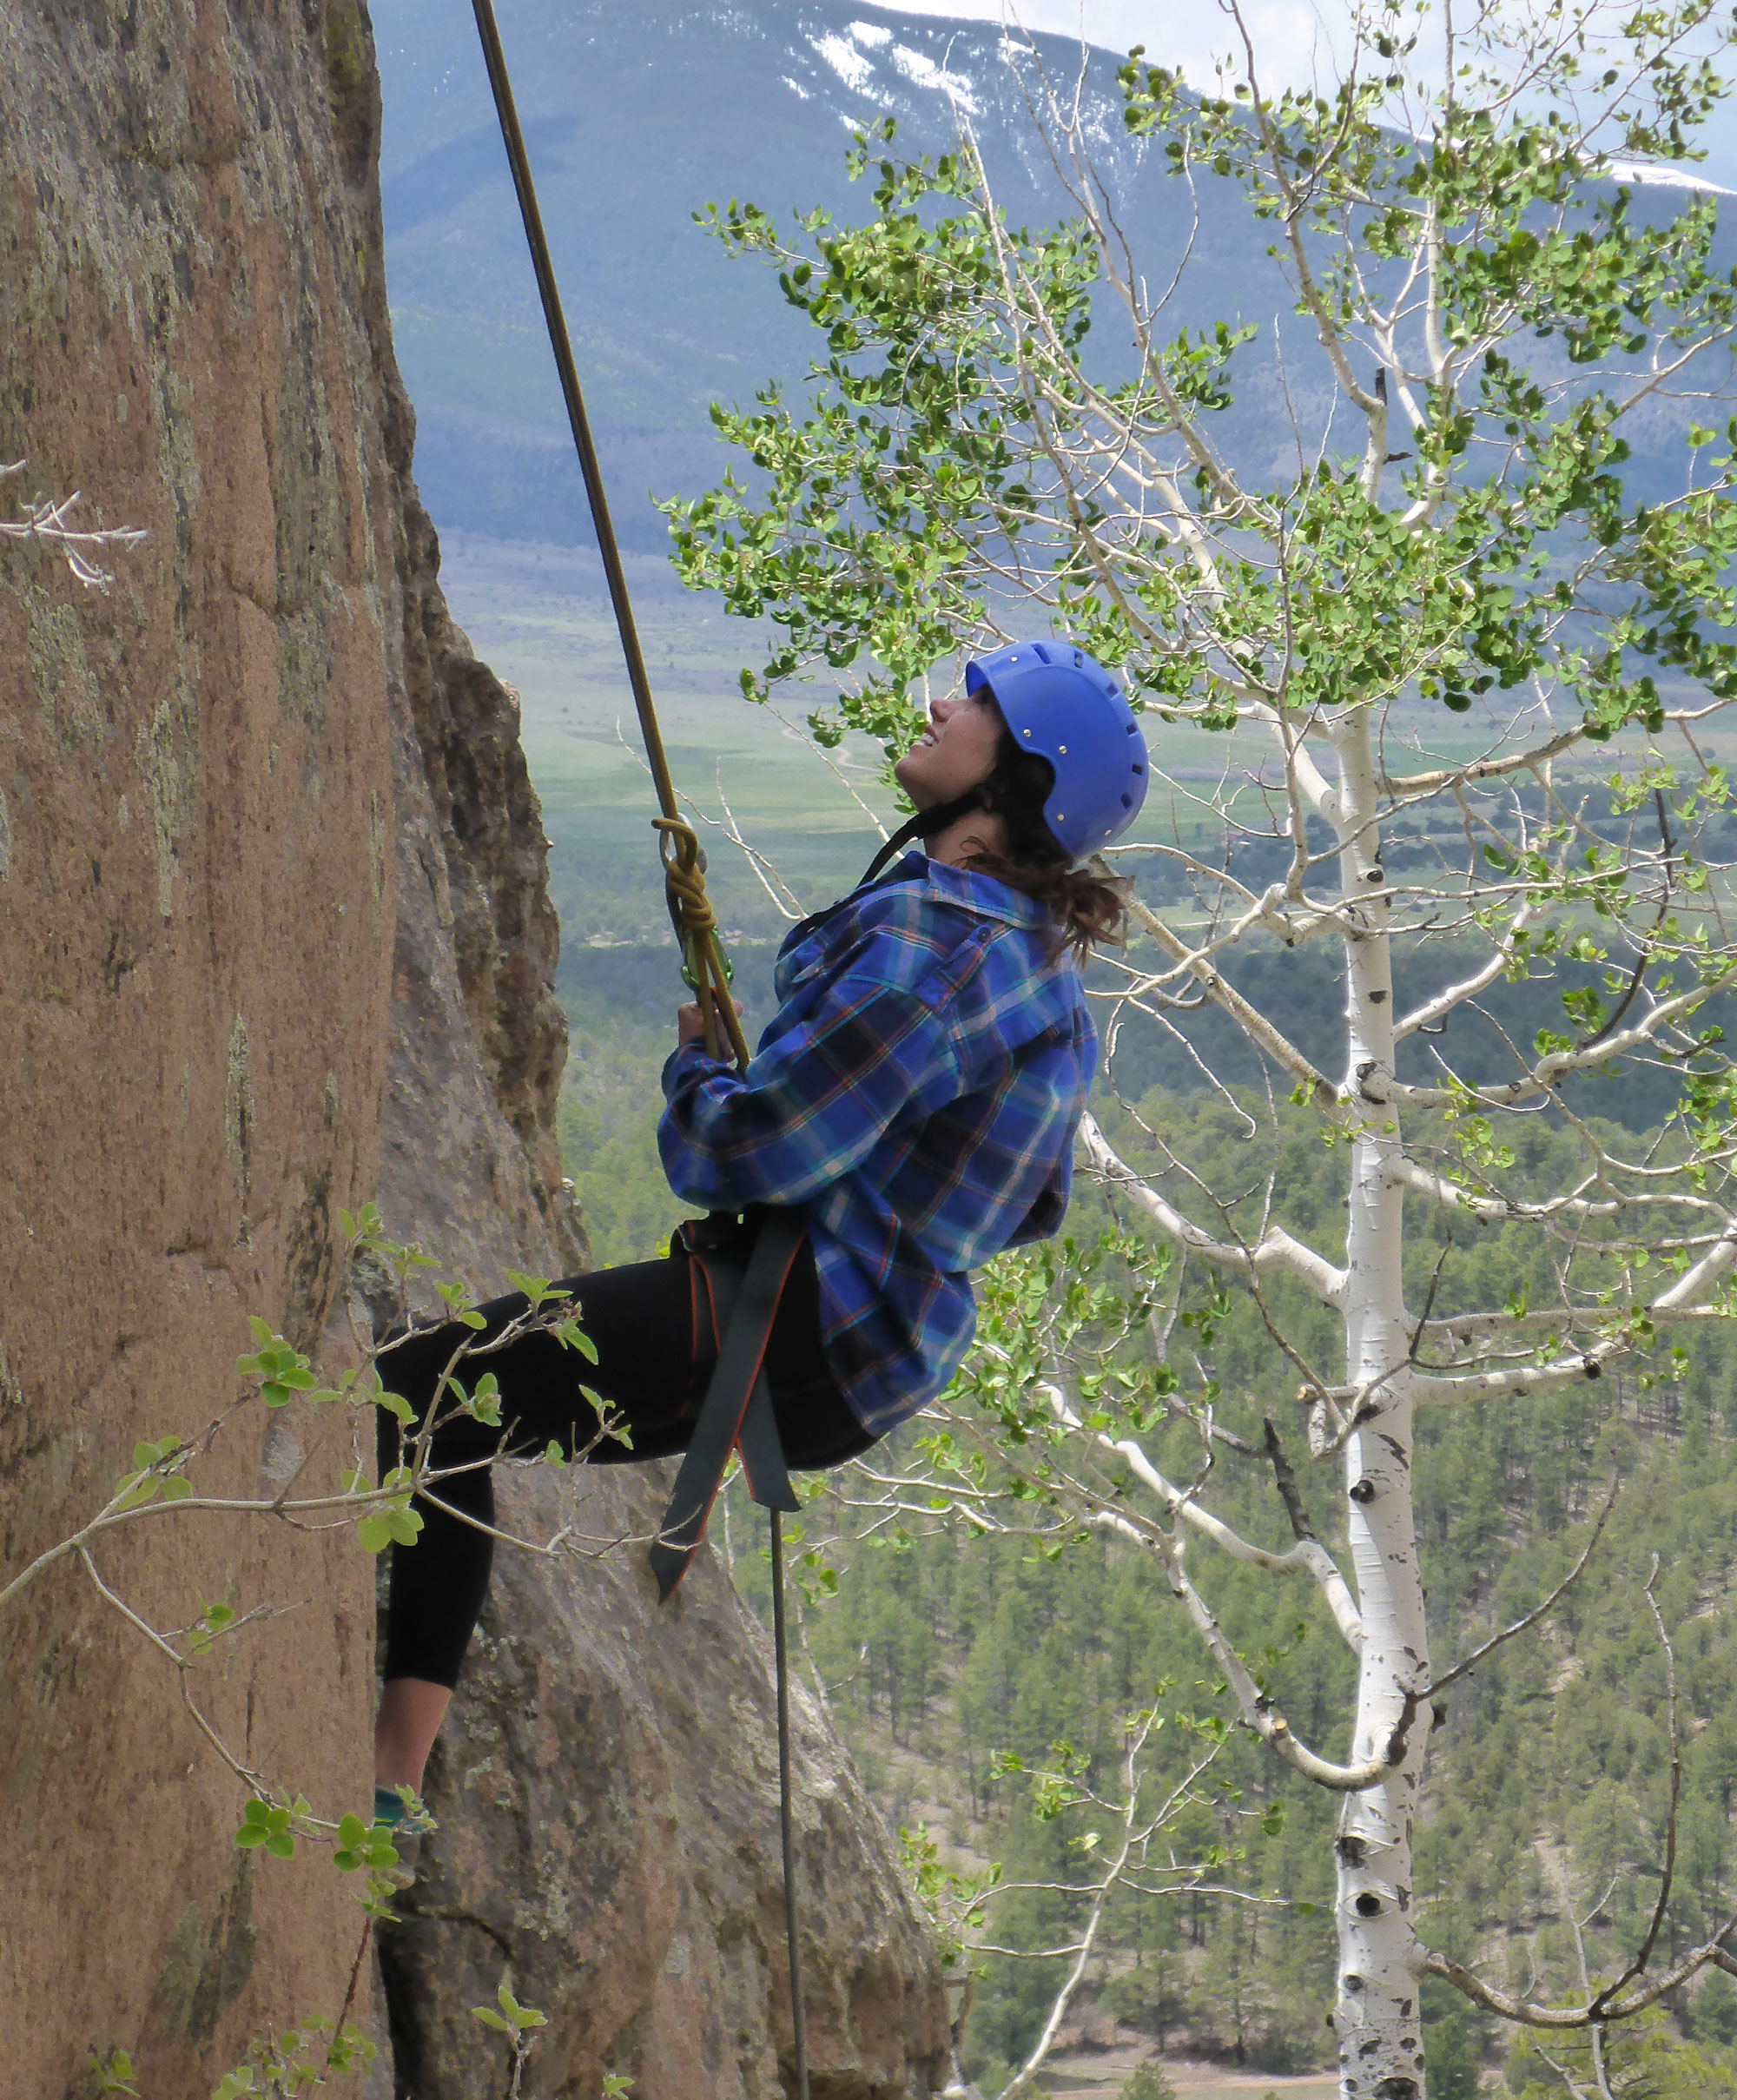 Colorado Rock Climbing History